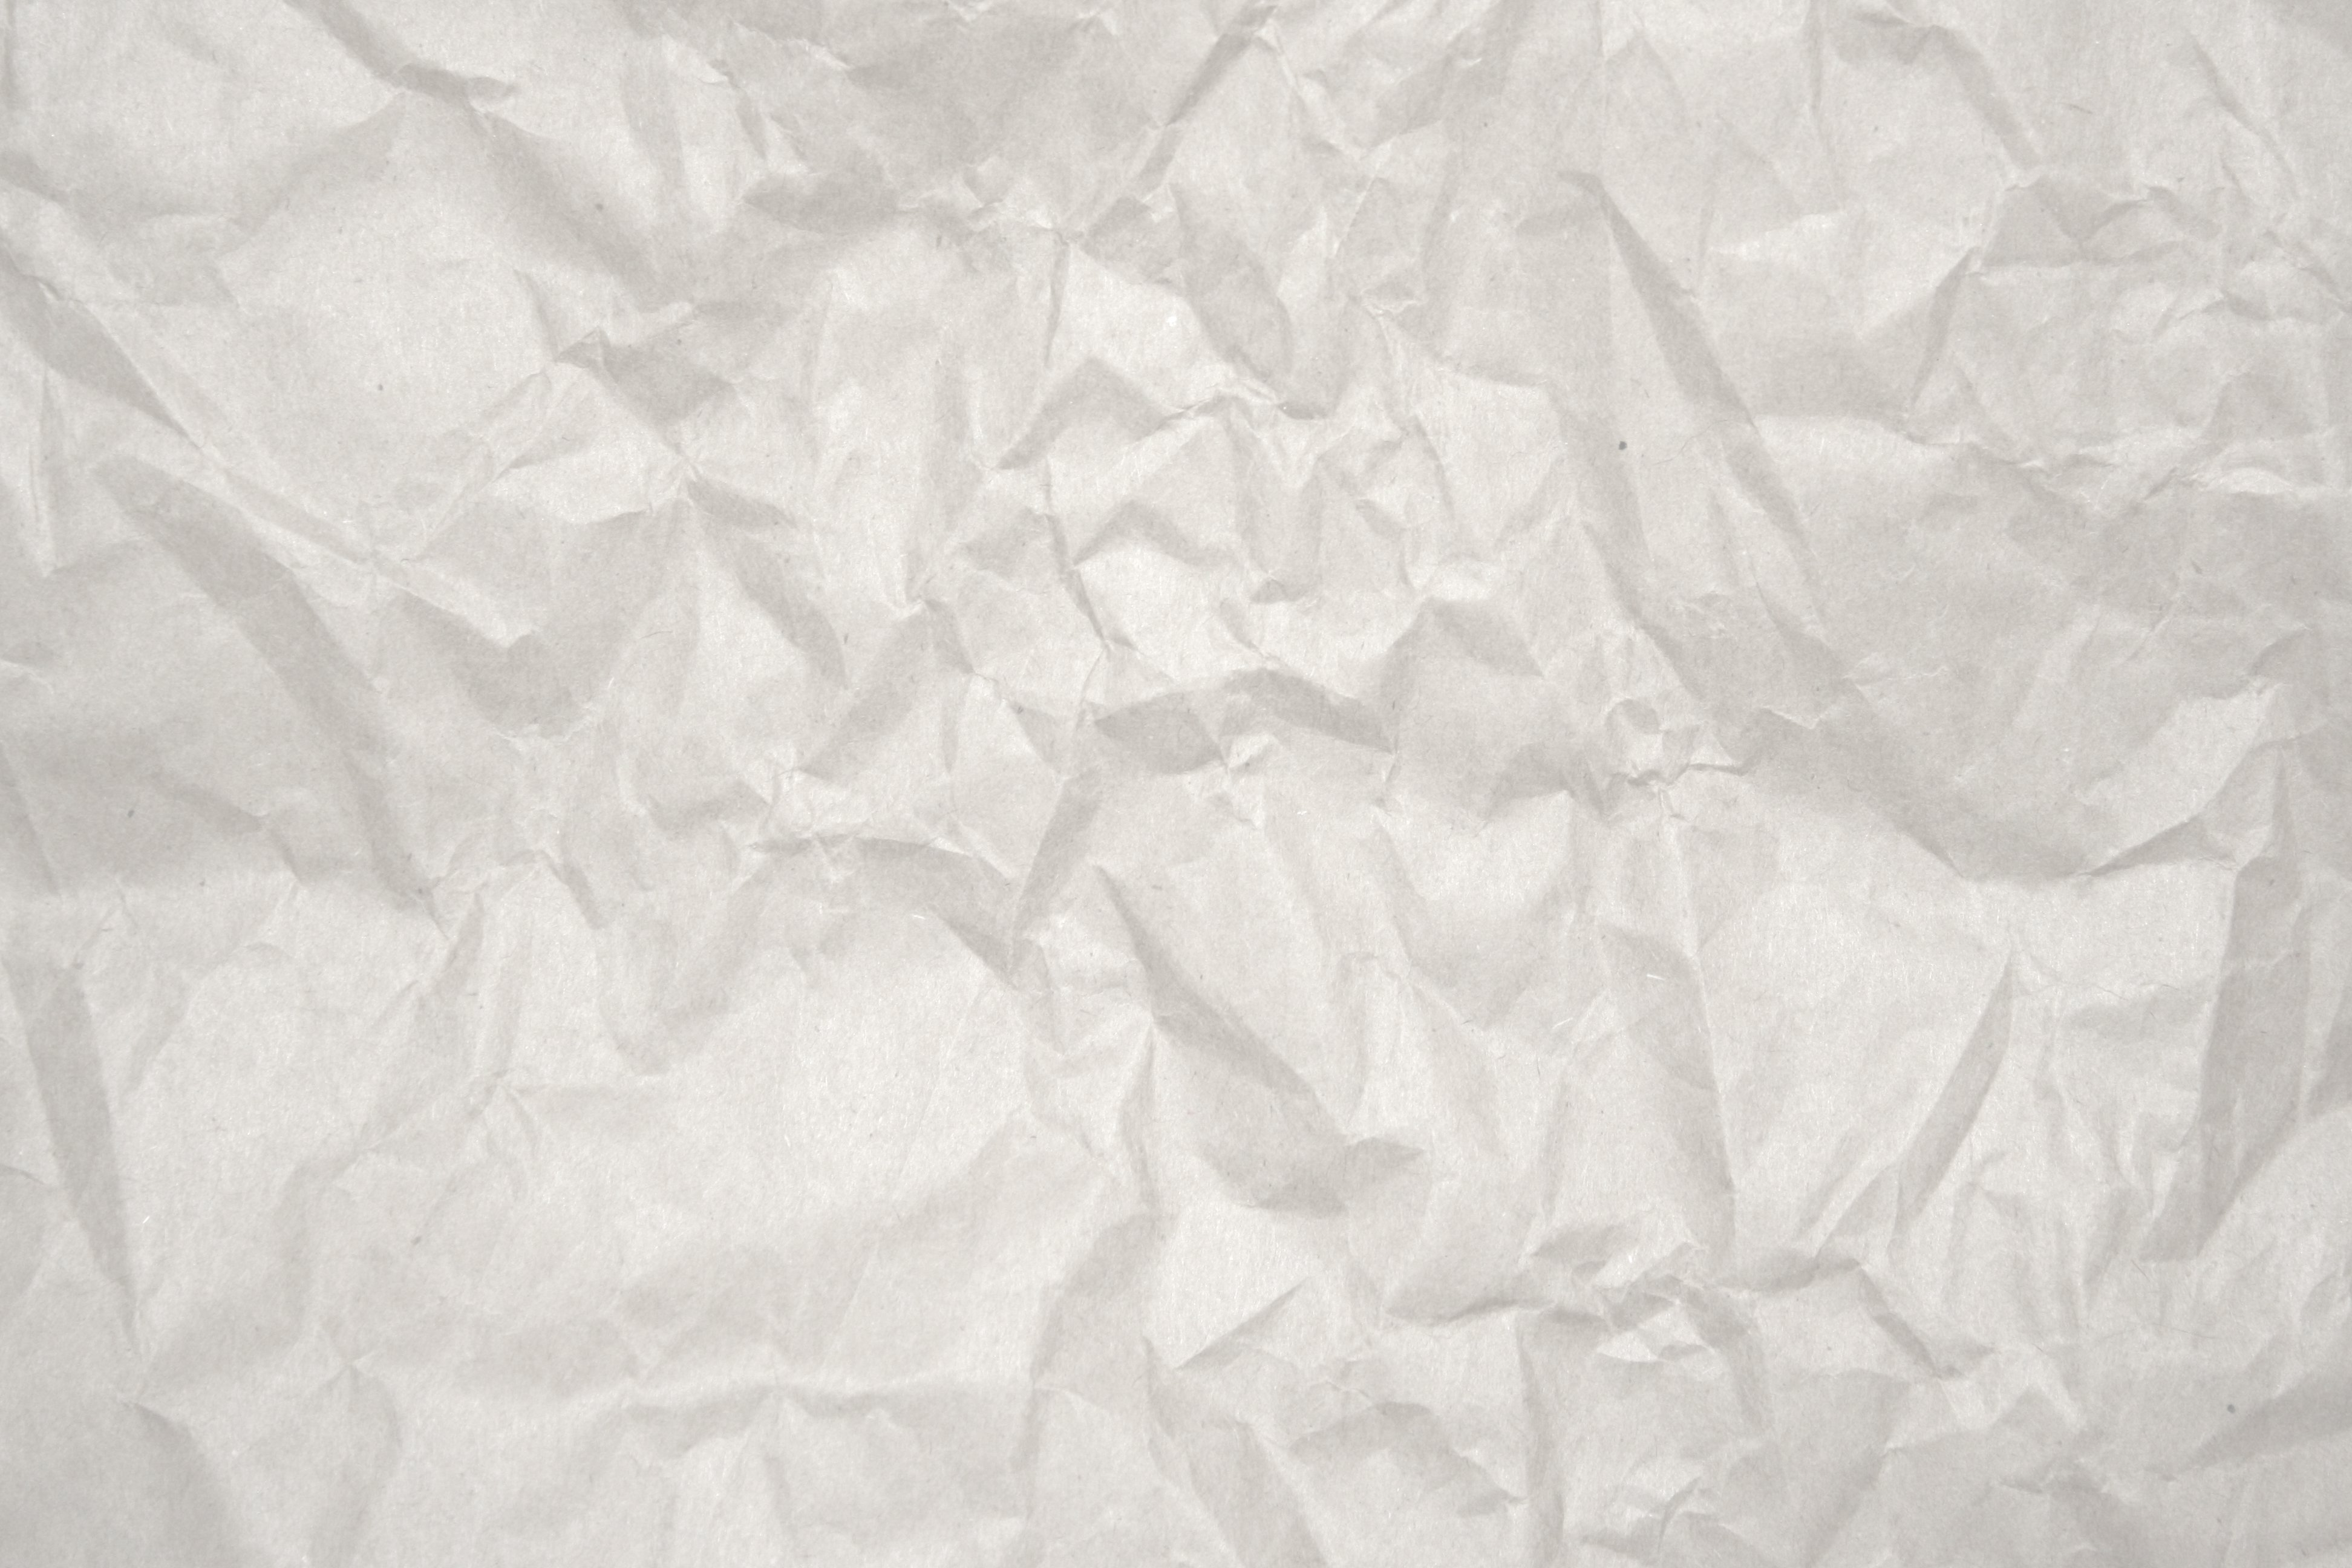 7 Crumpled Paper Texture Photoshop Images